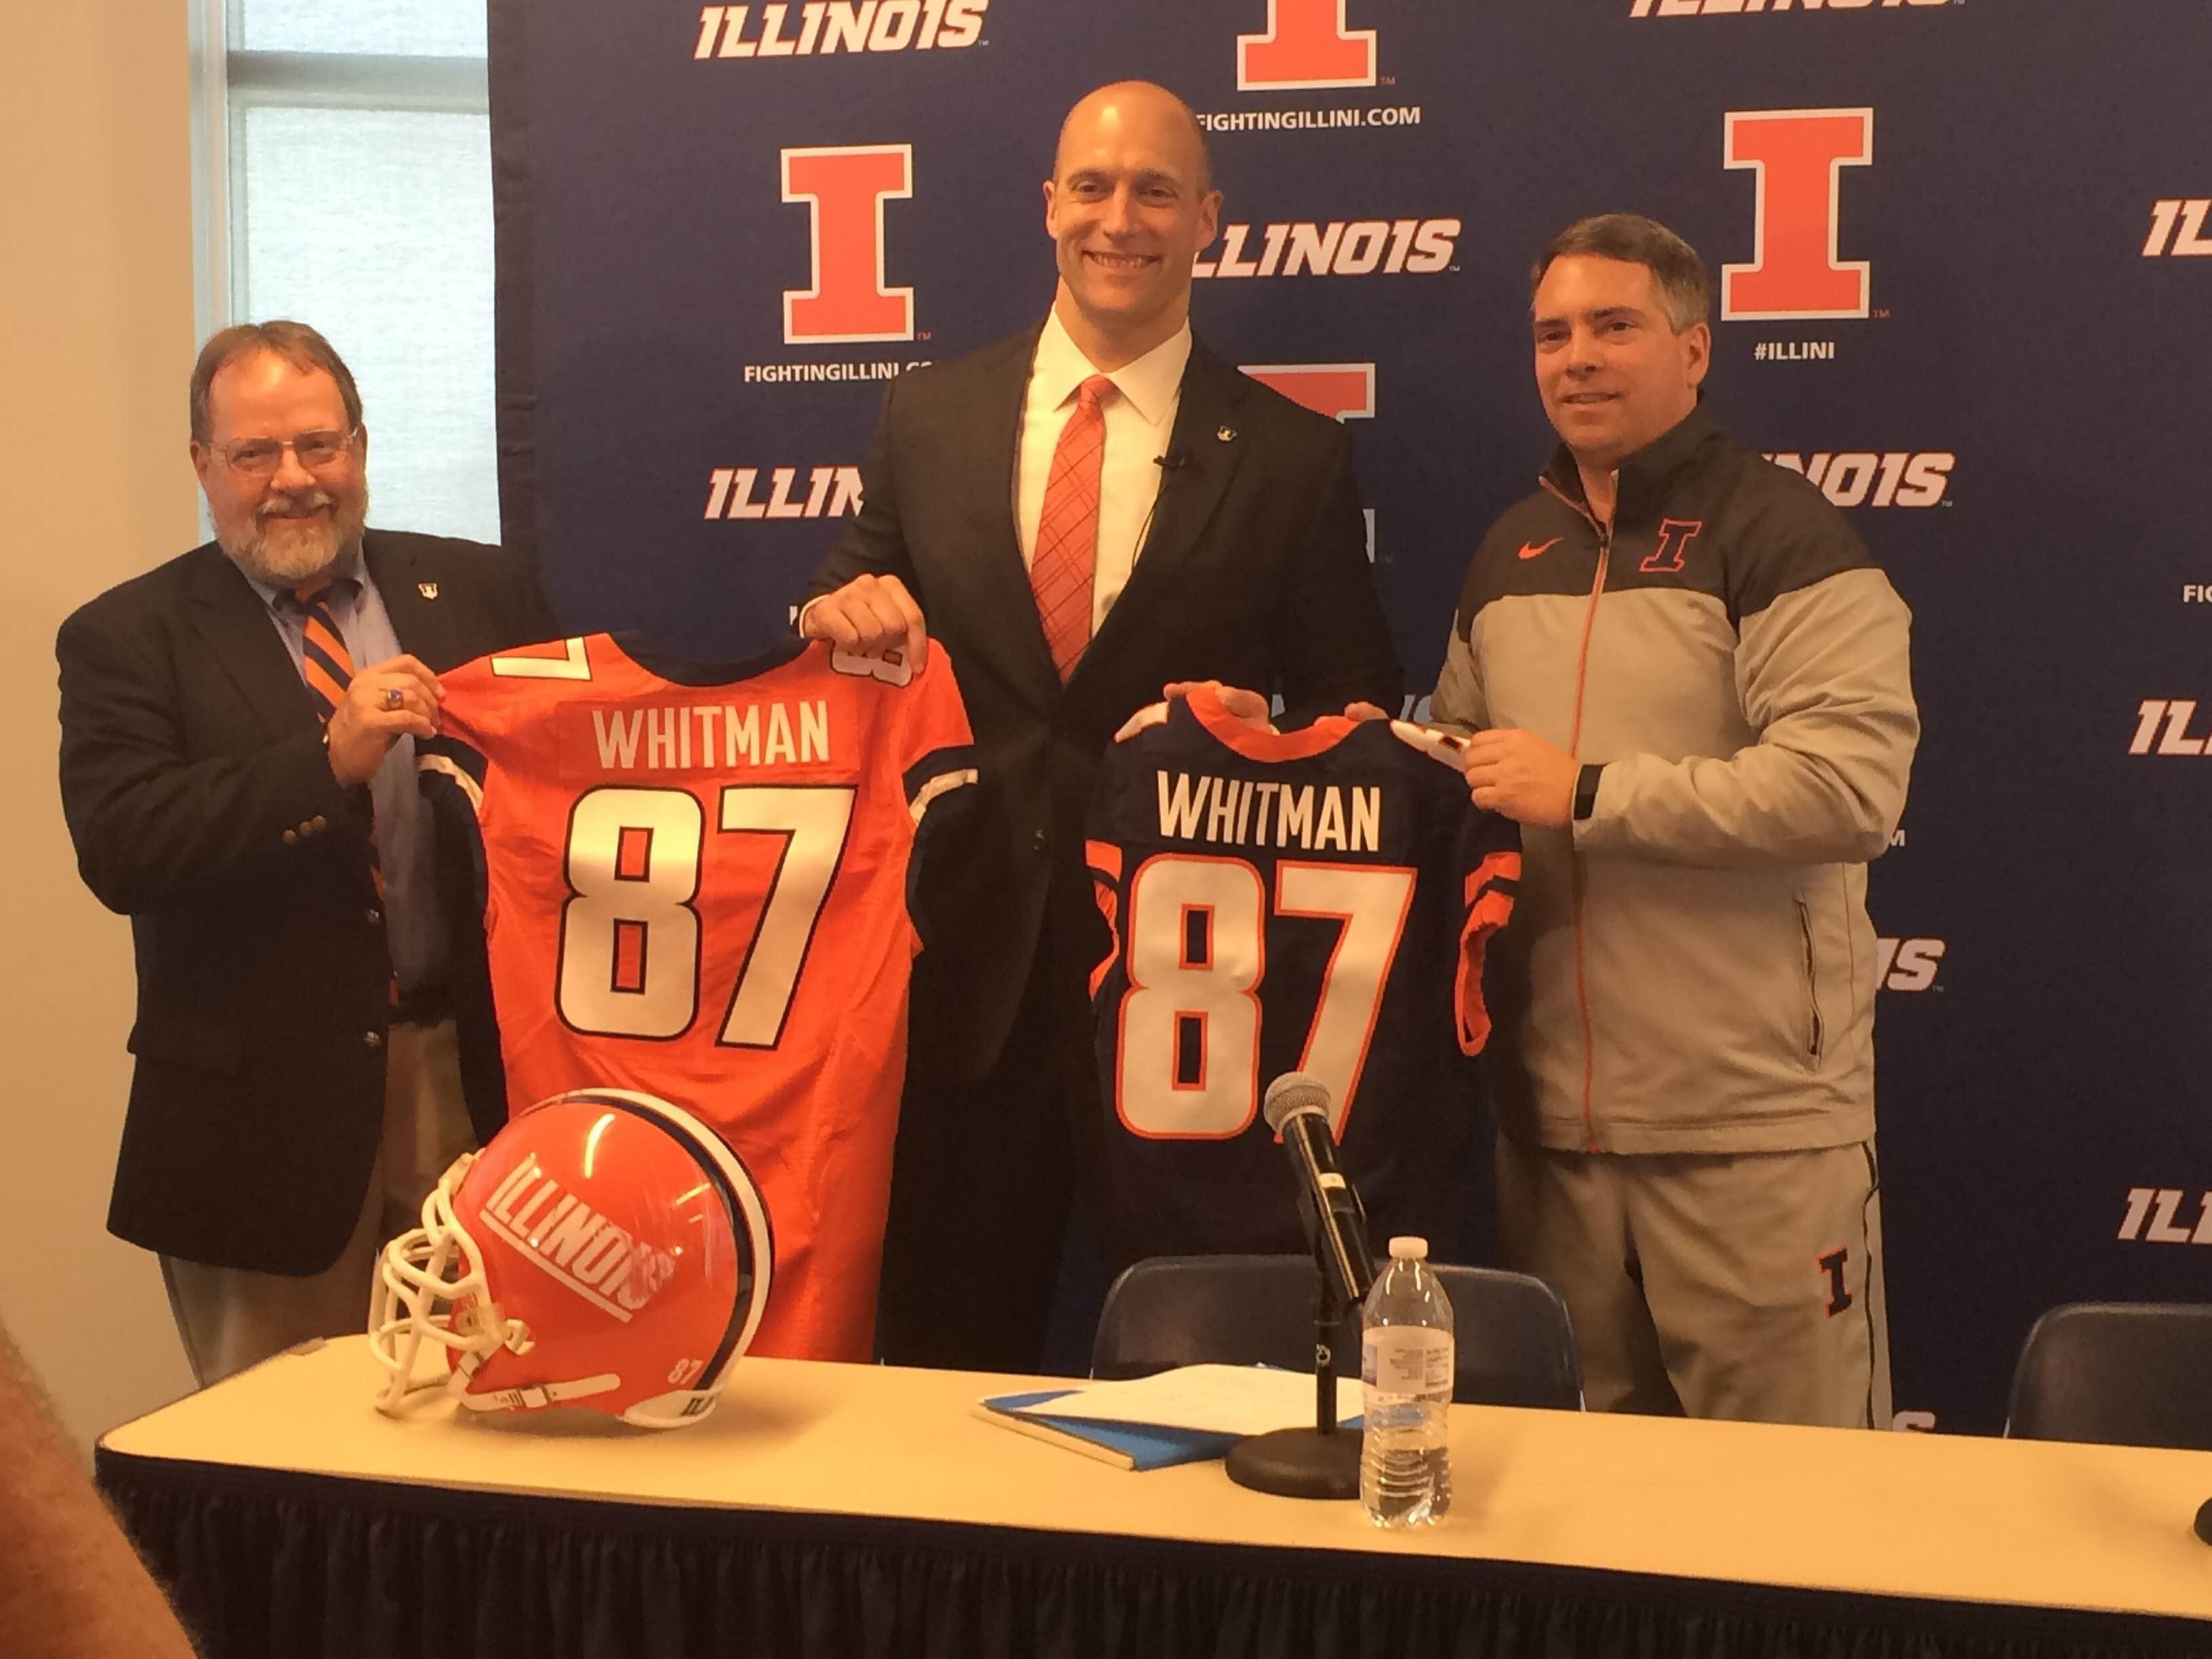 Josh+Whitman+is+going+to+need+time+and+patiences+from+Illinois+fans+in+his+time+as+Illinois%27+athletic+director.